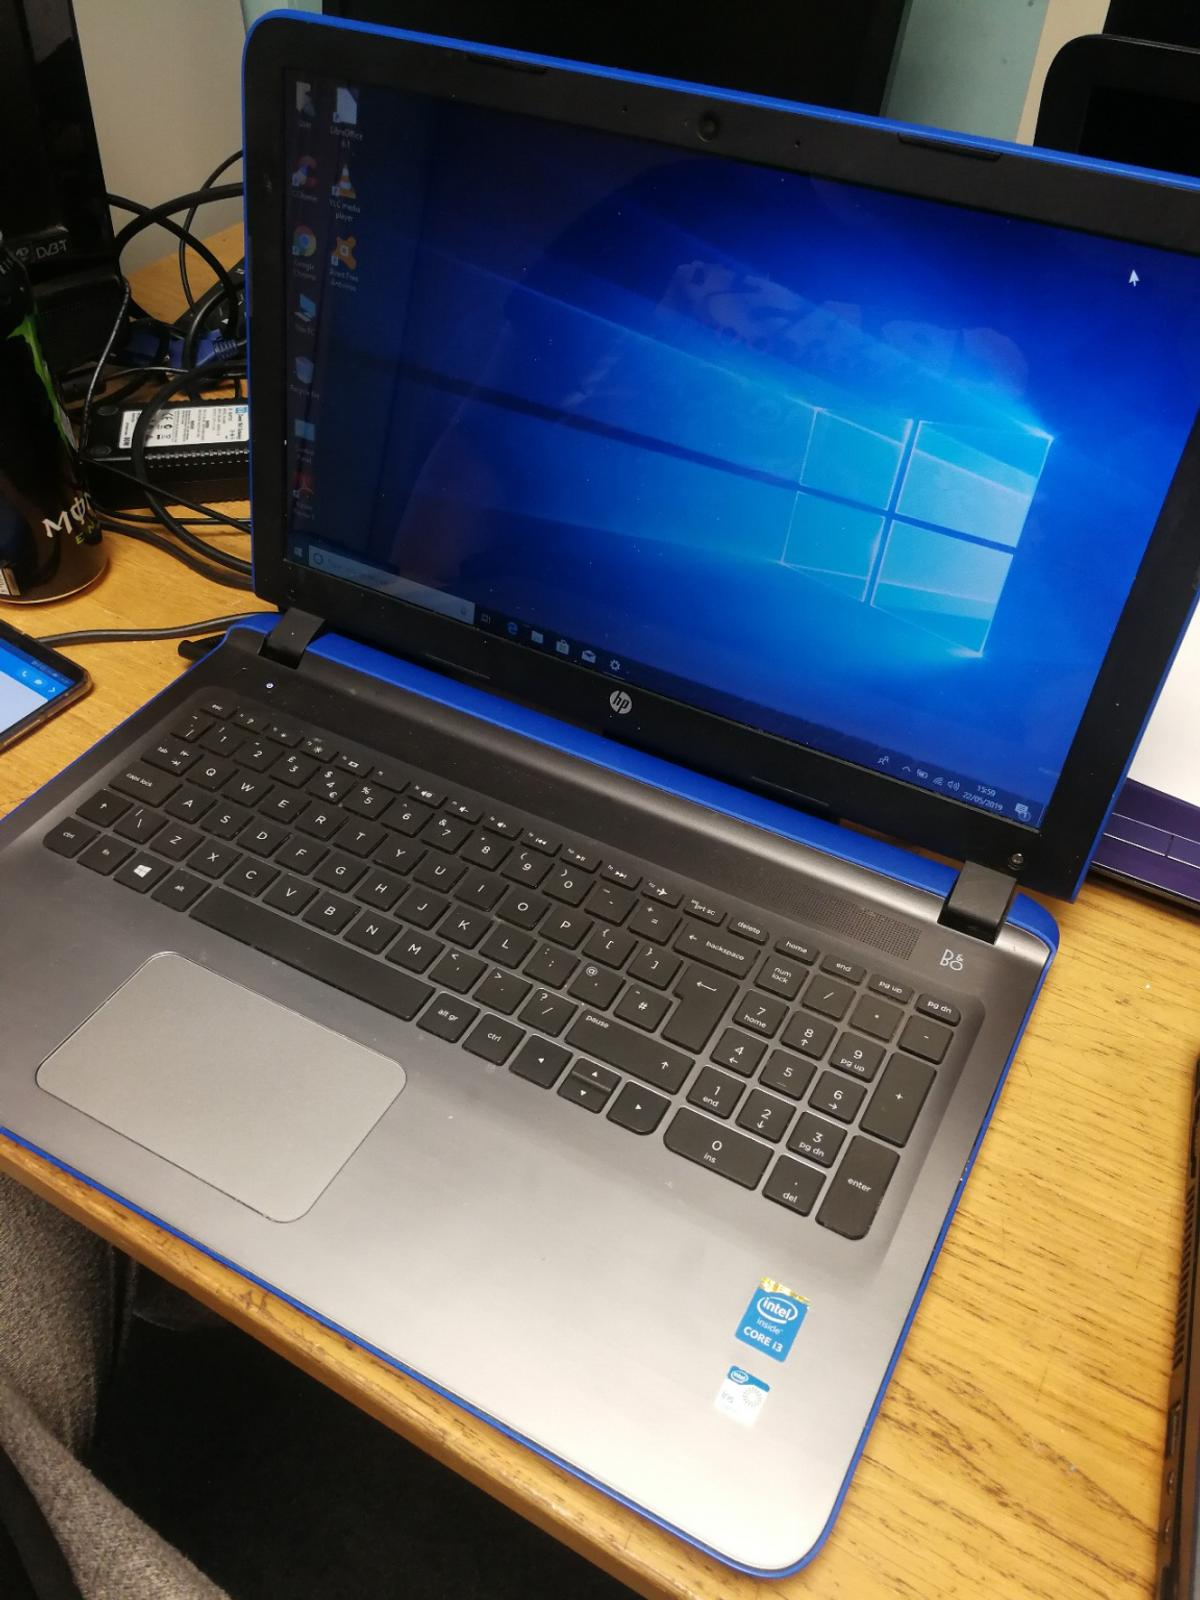 HP Pavilion 15 6 inch laptop i3